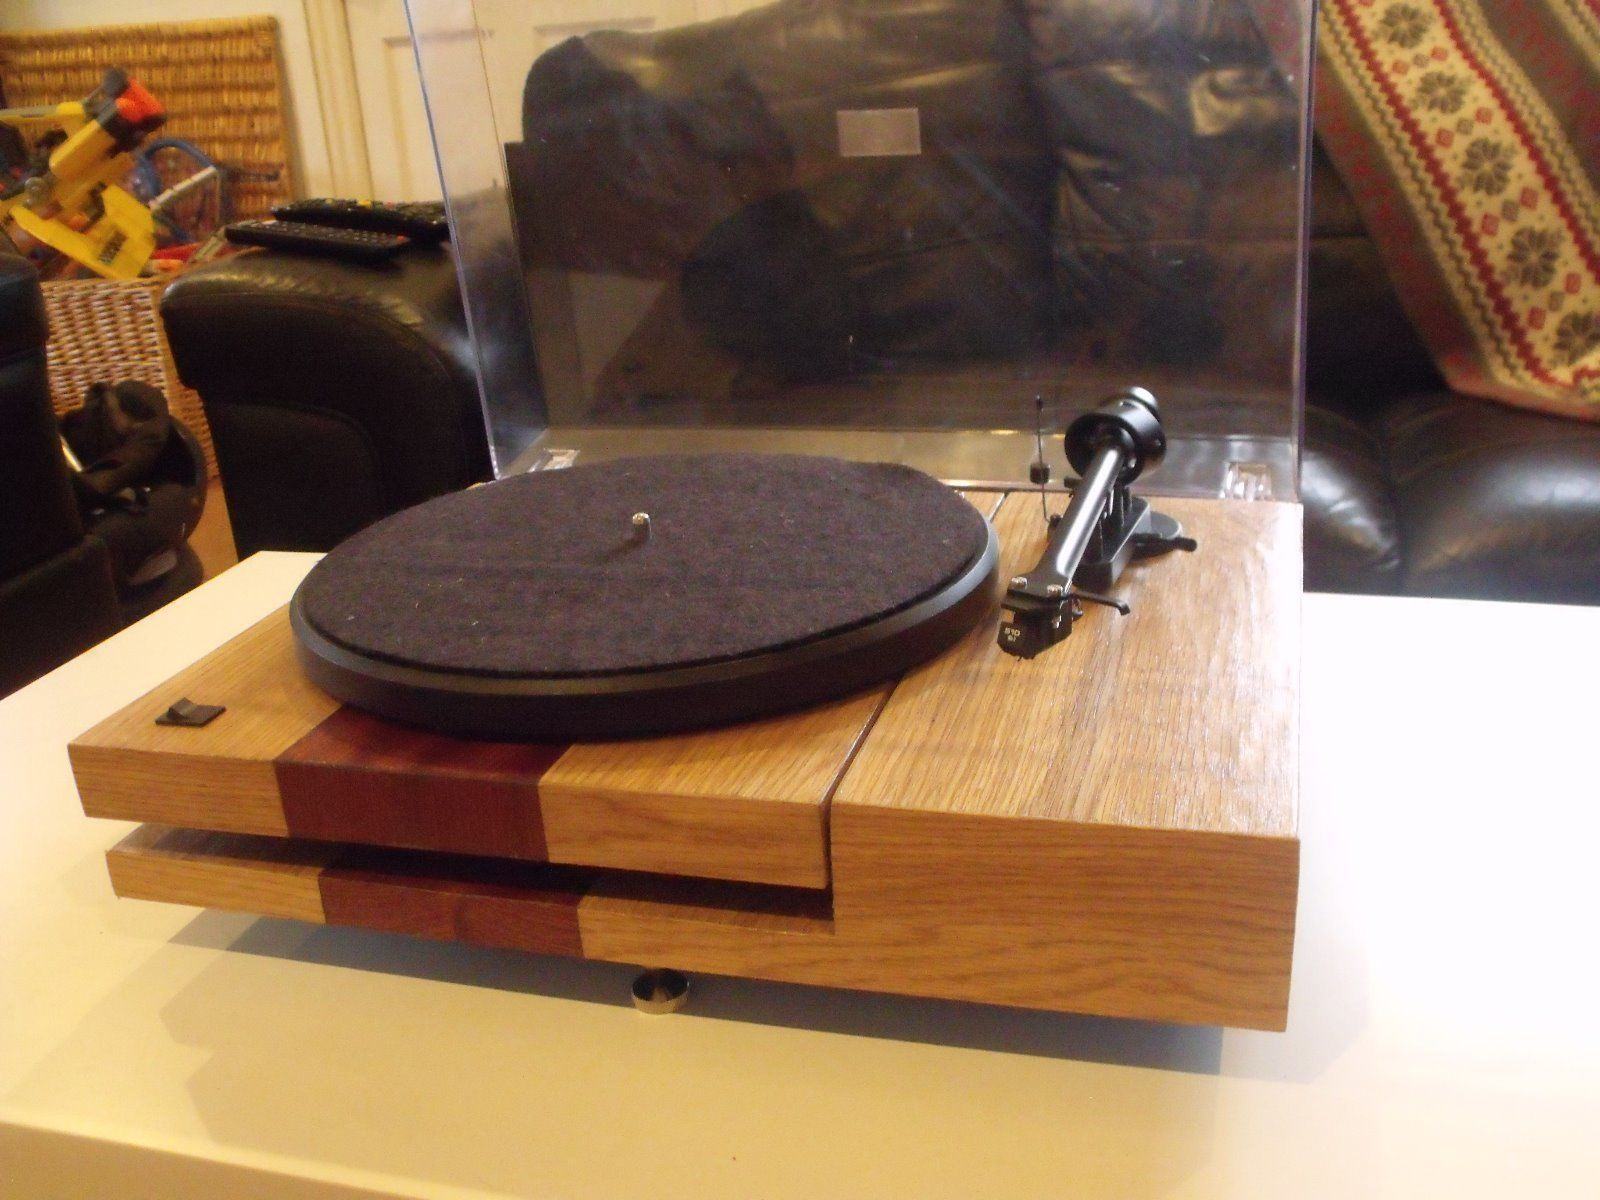 Project Debut Iii With Custom Plinth 237 00 Picclick Uk Diy Turntable Turn Table Vinyl Plinths